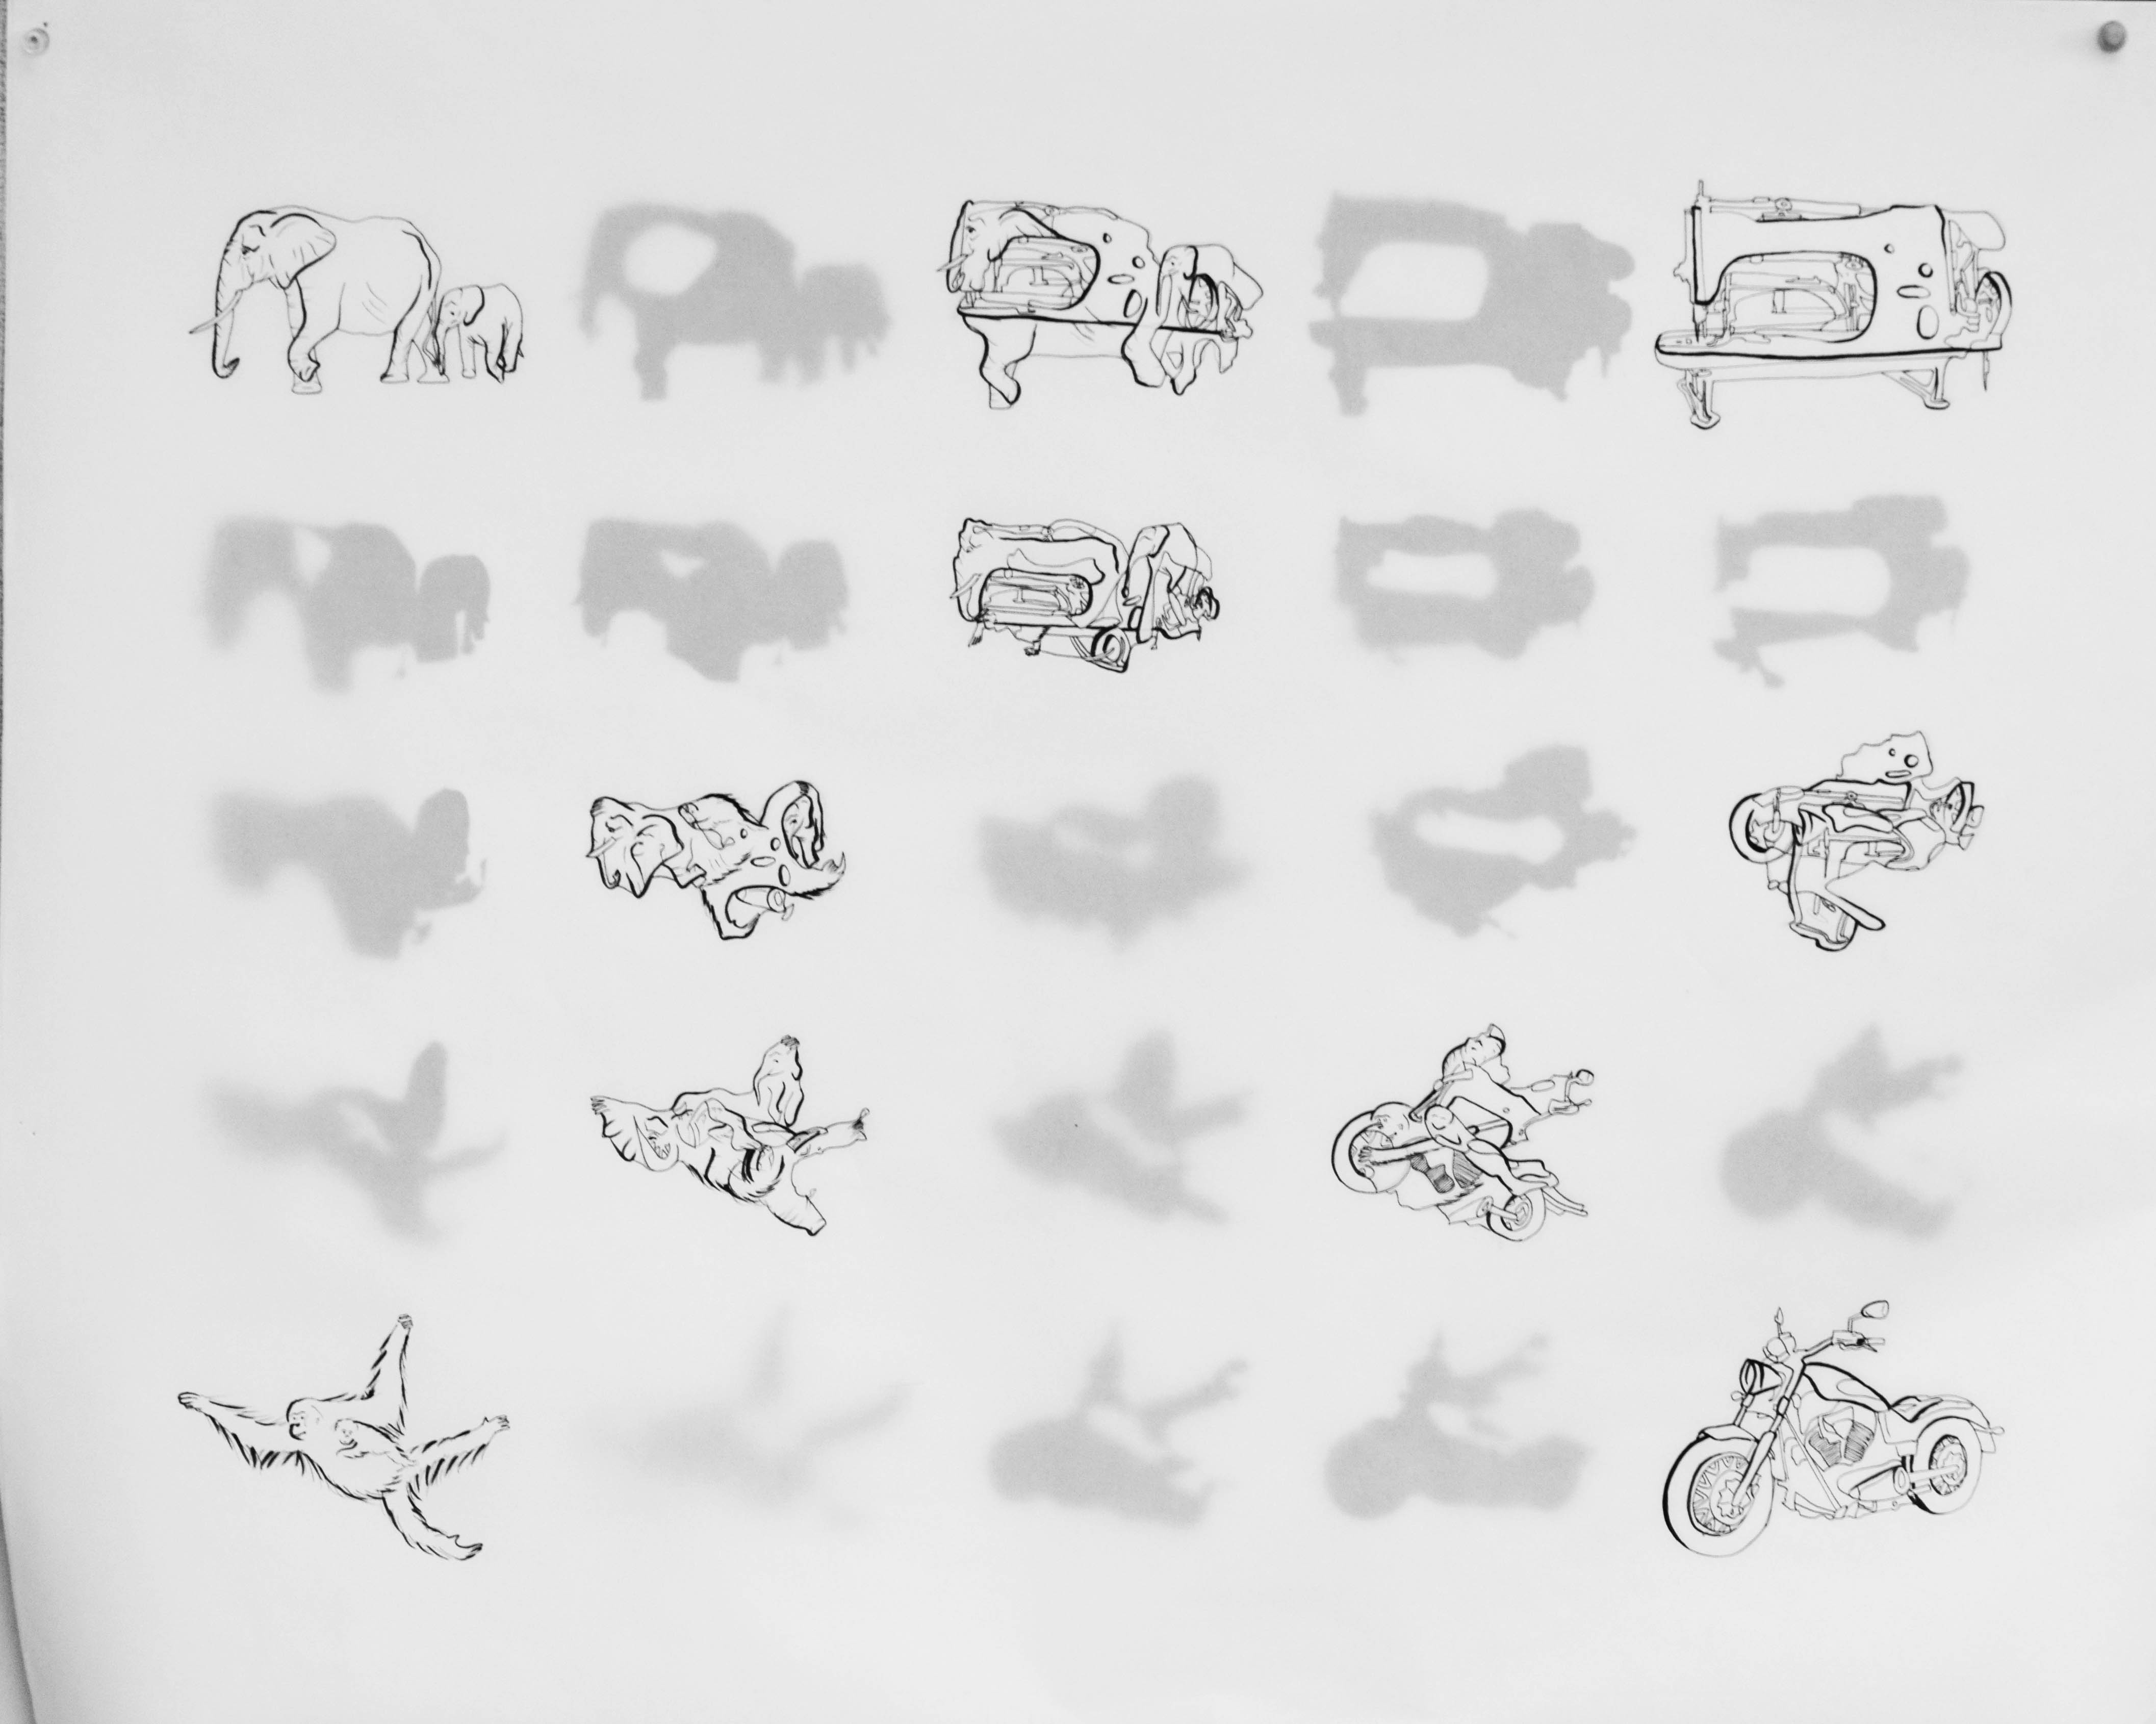 A continuation of exploring machines combined with animals where the outline was determined by a Rhino tool and the interior by myself.